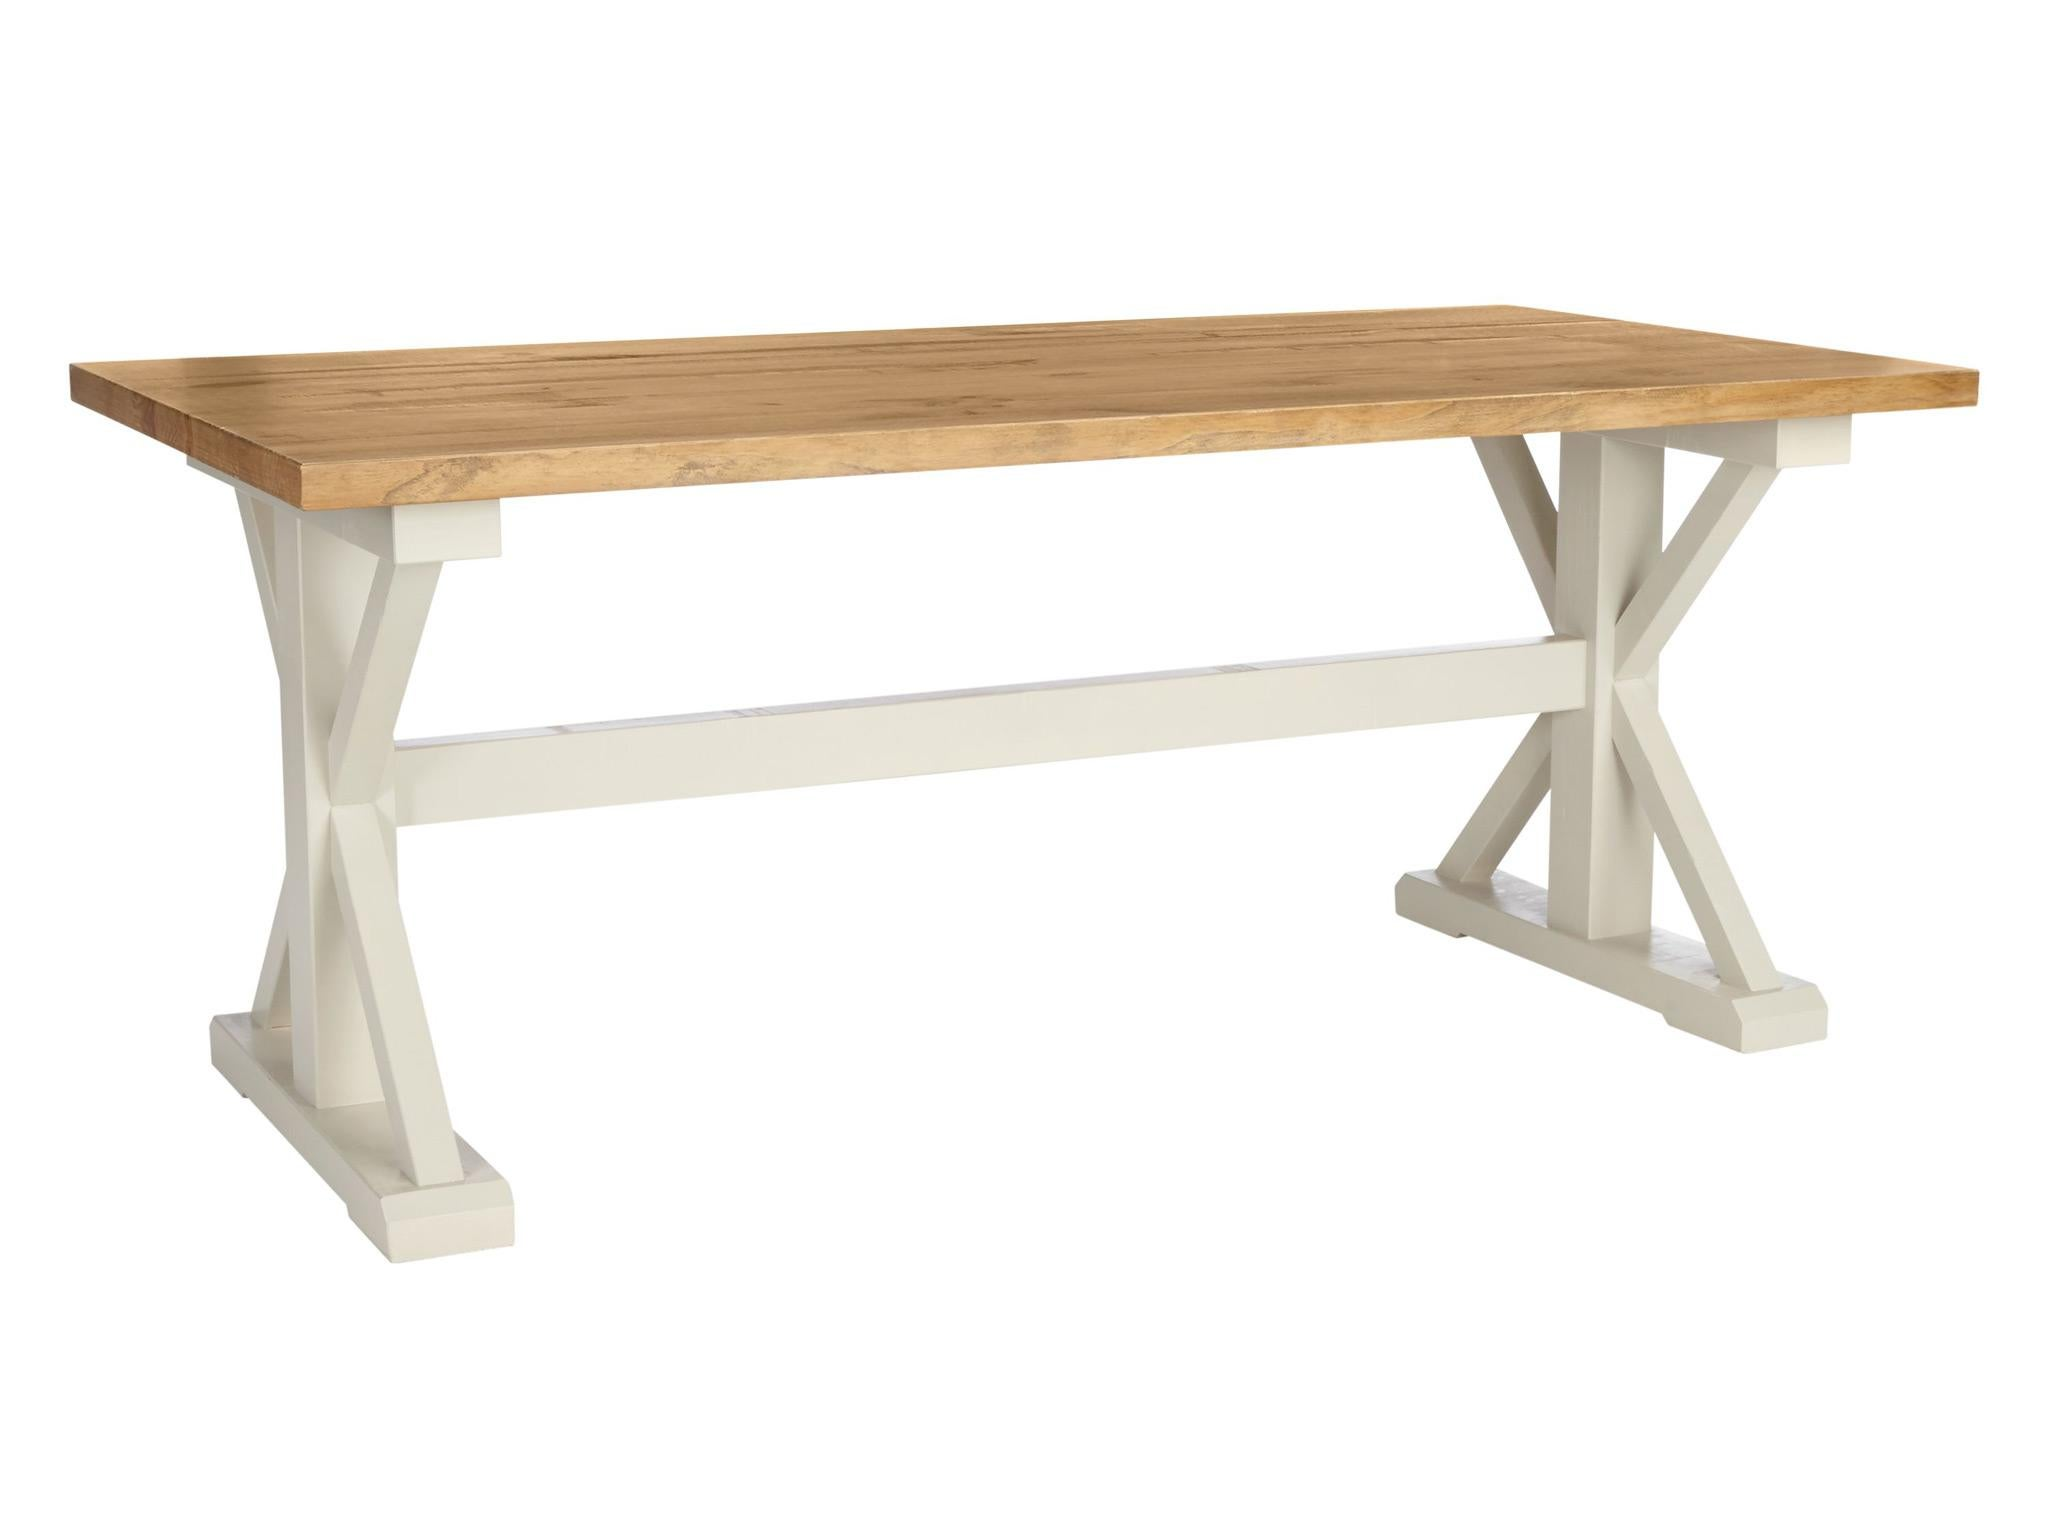 With A Country Kitchen Style, The Durham Dining Table Has Chunky Legs And  Top Made From New Zealand Pine. Its Rugged Features Are Designed For  Sturdiness ...